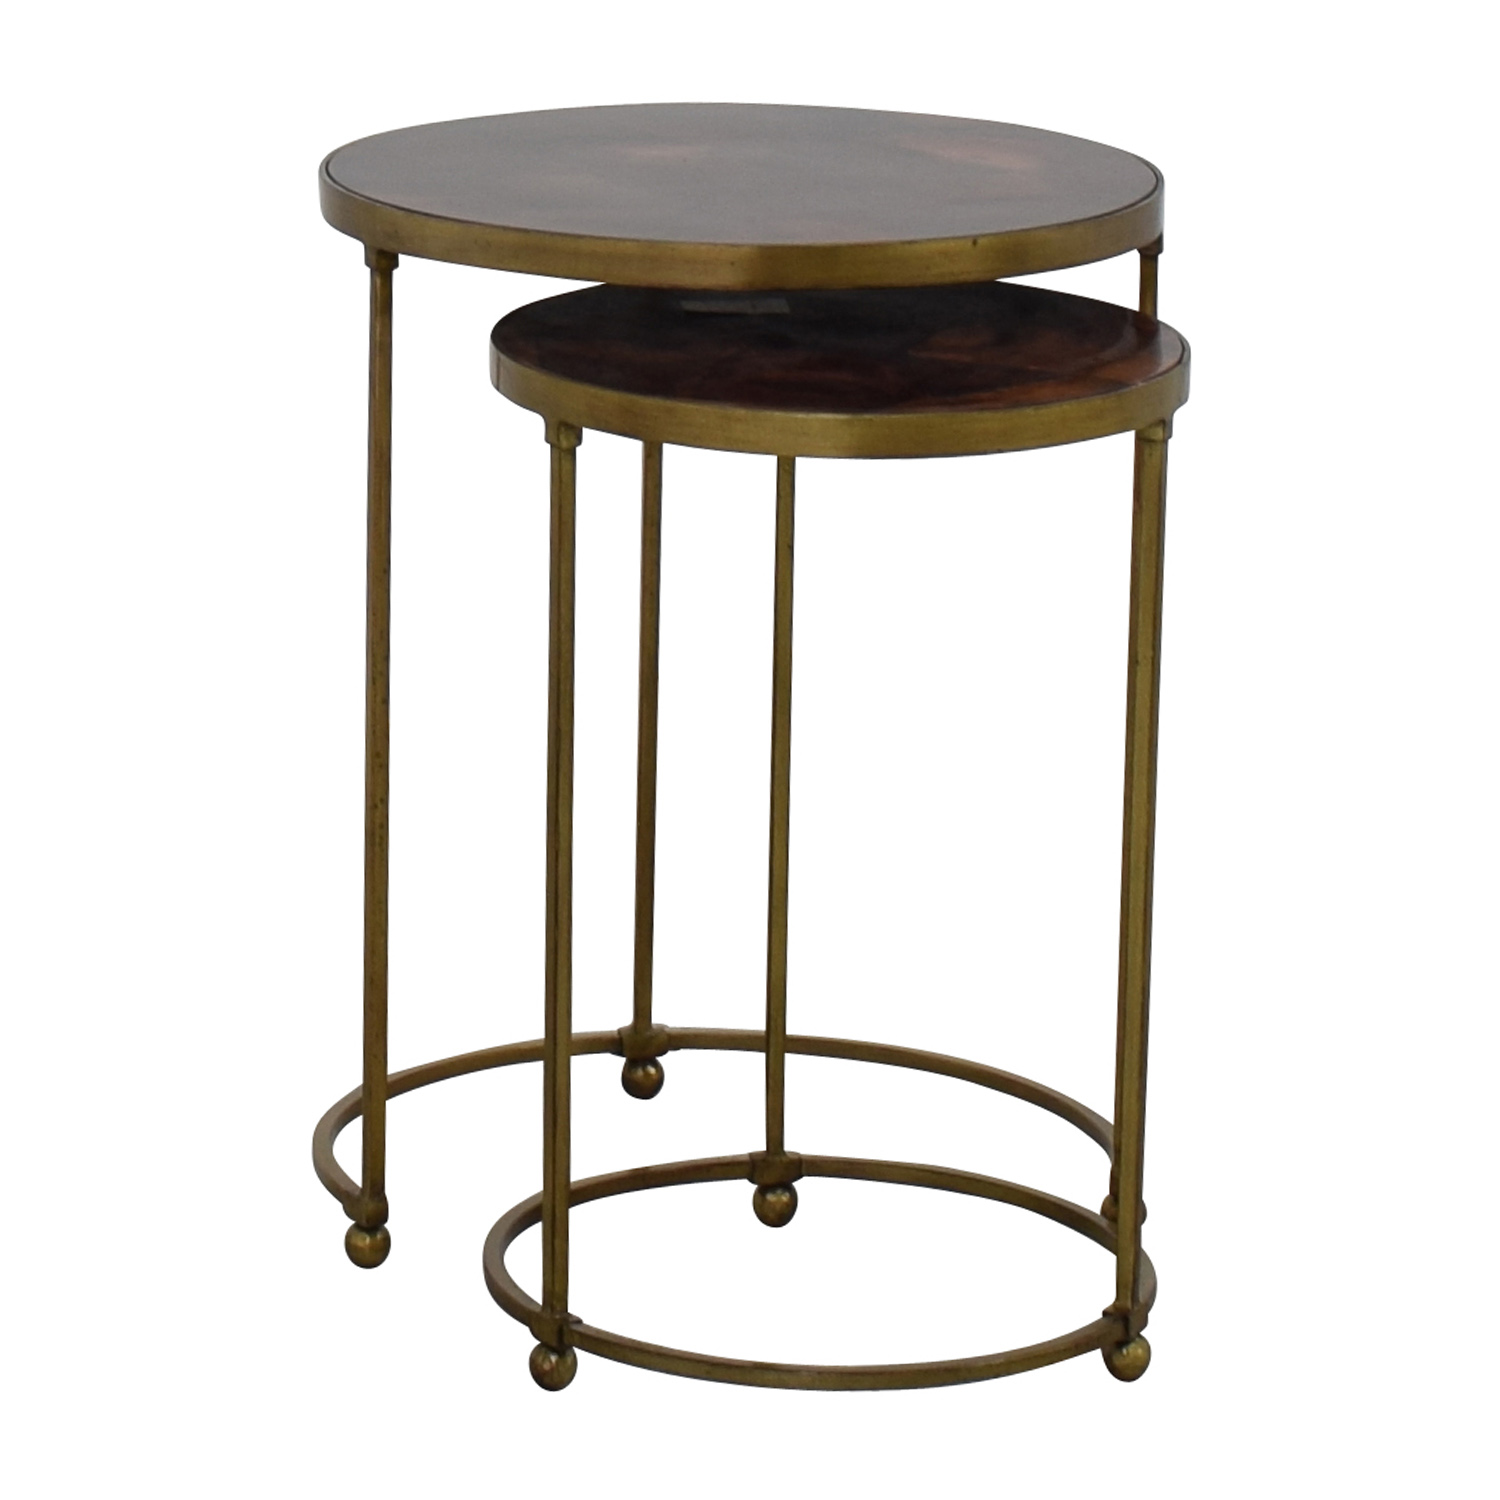 Bronze Metal Round Coffee Table: ABC Carpet And Home ABC Carpet & Home Nesting